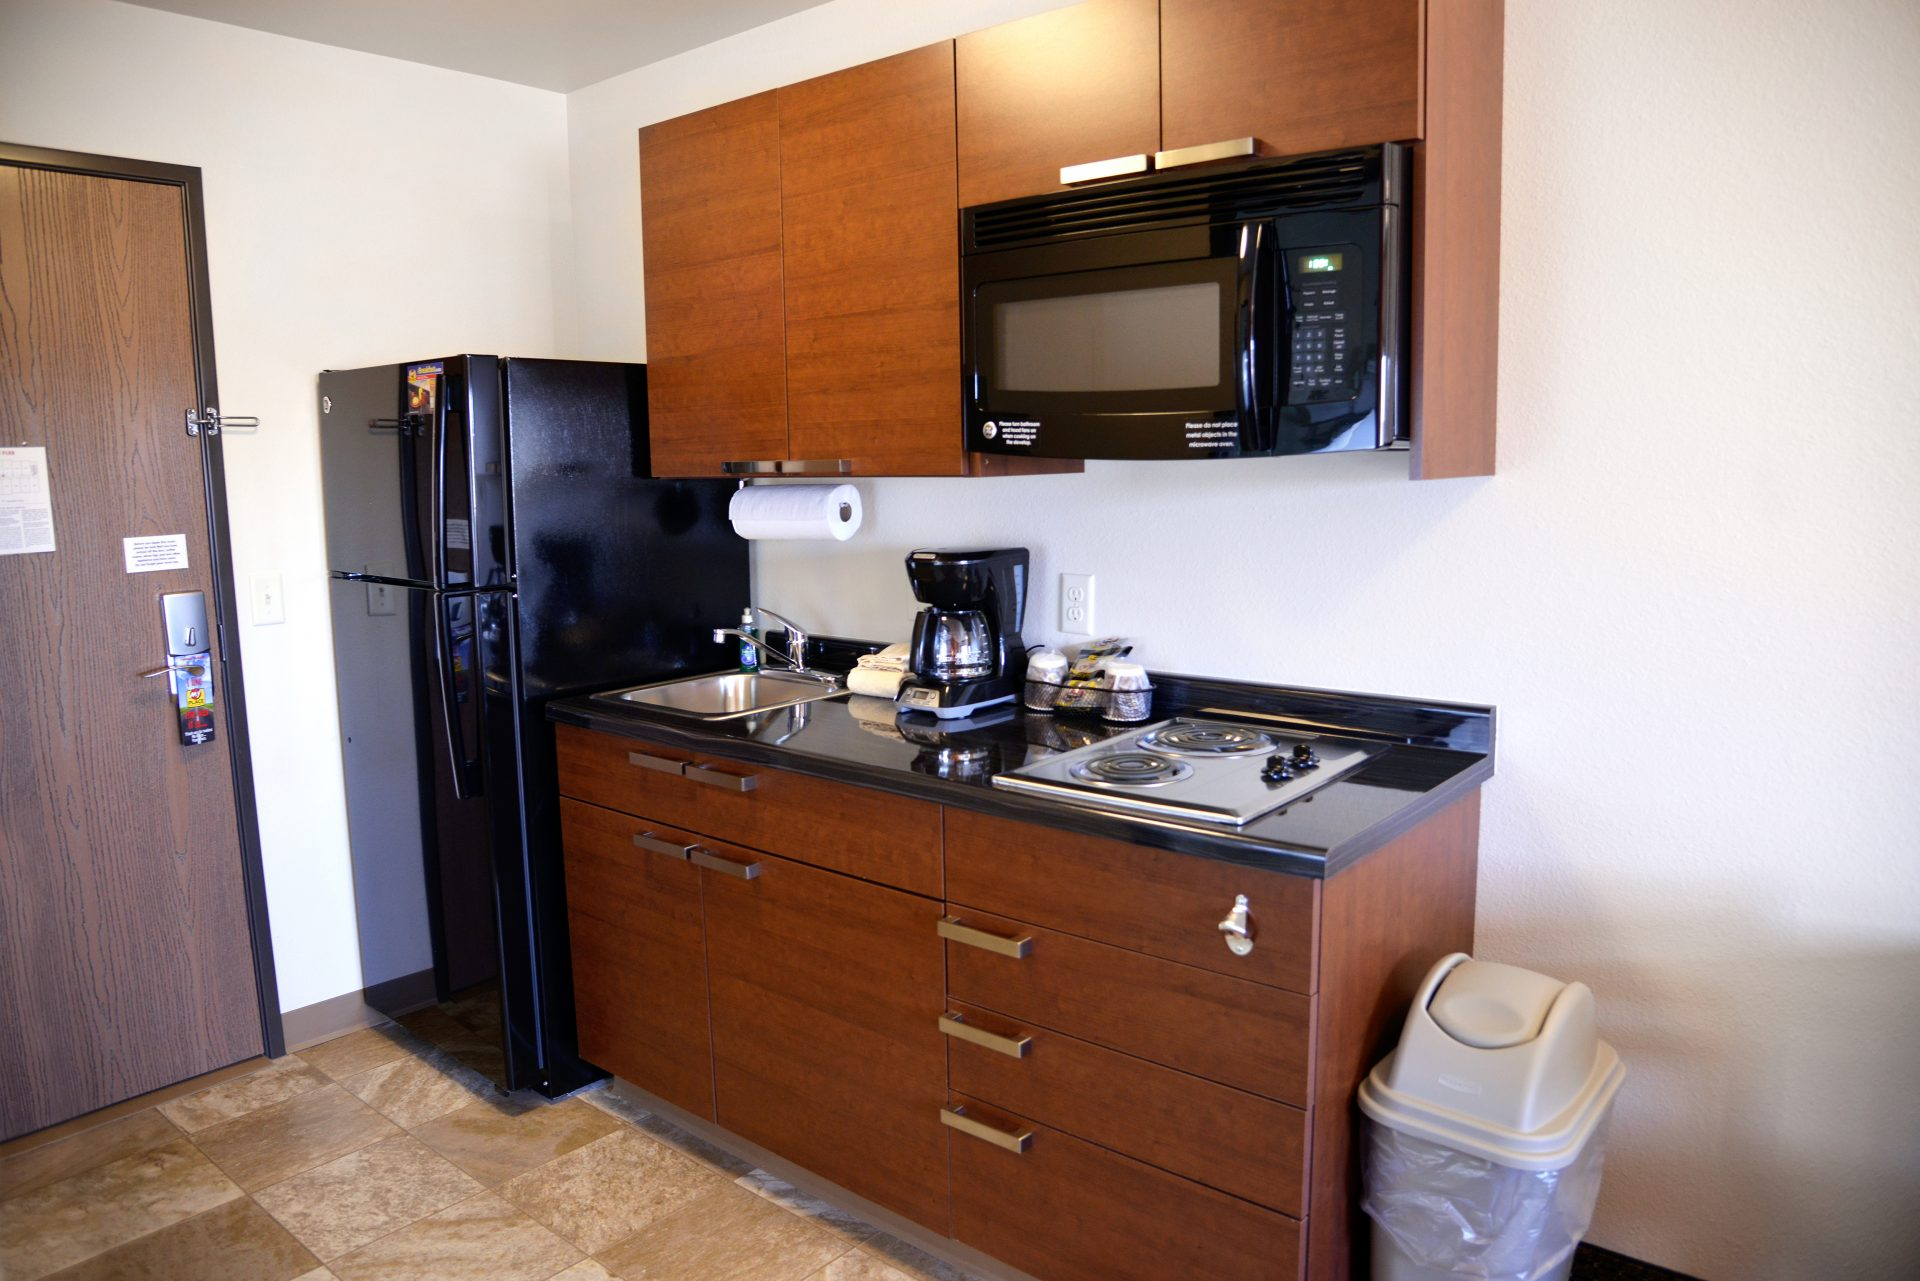 My Place Hotels | West Valley City, UT 84119 | Extended Stay Hotels ...